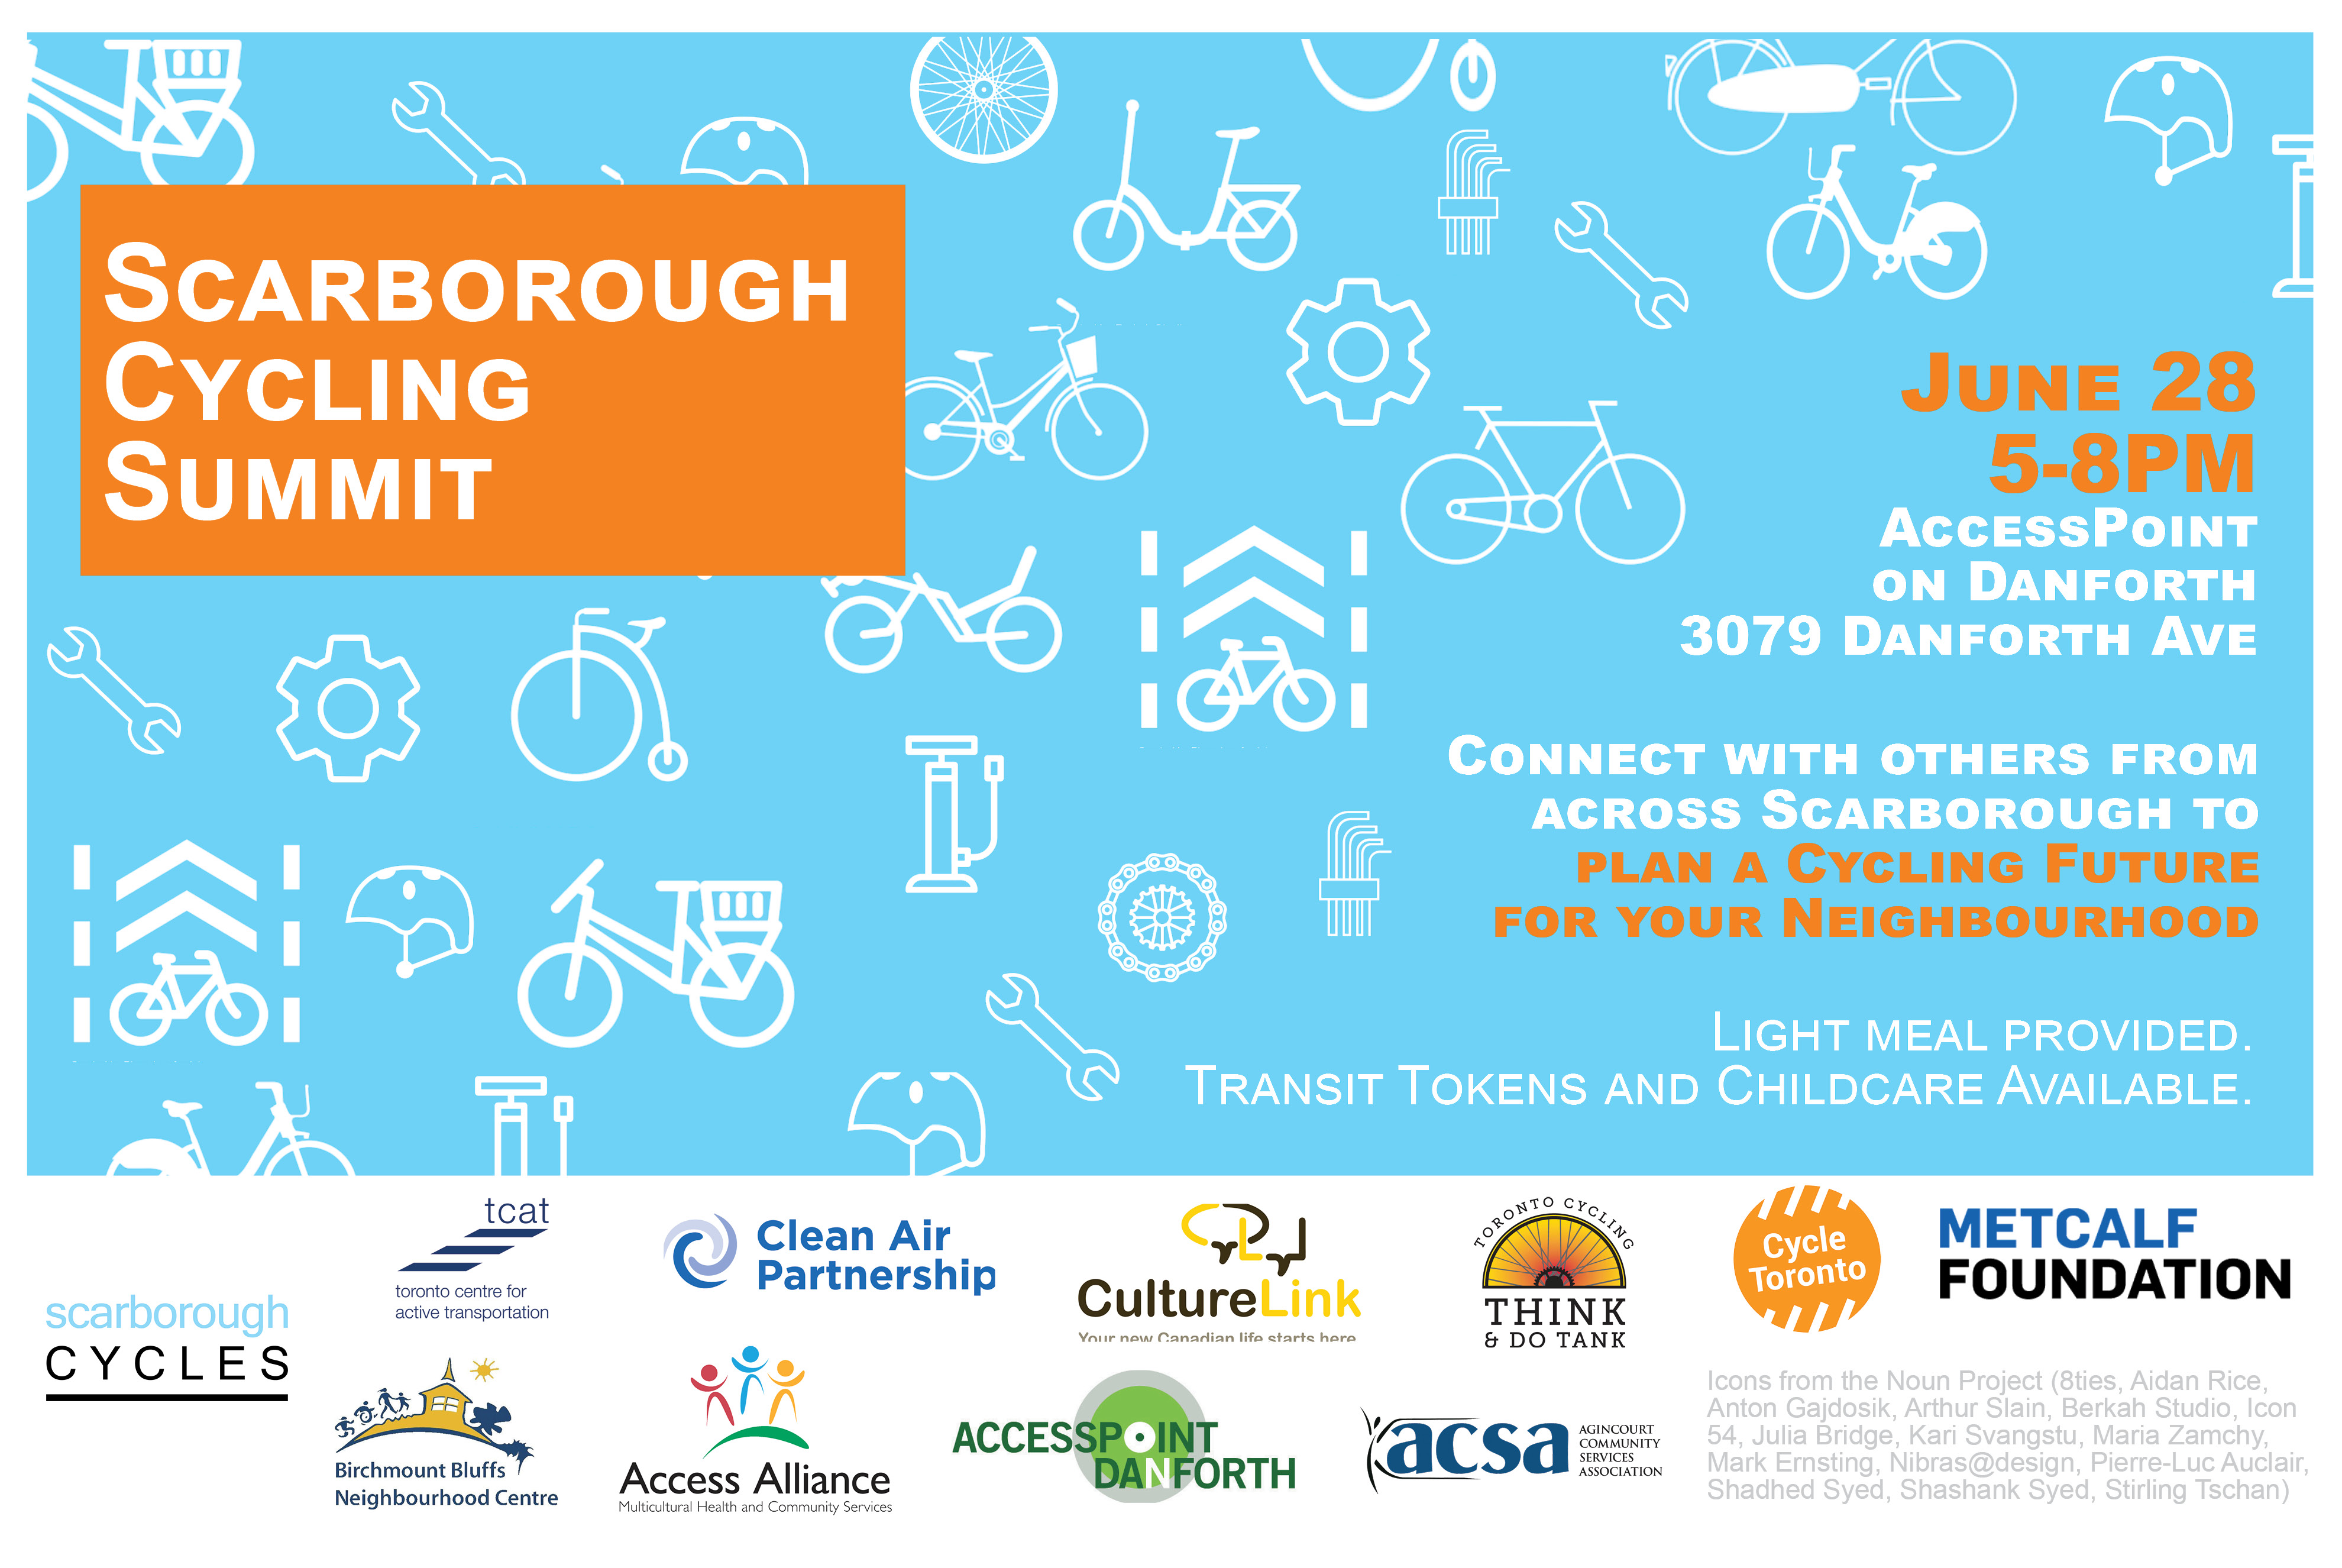 Scarborough Cycling Summit